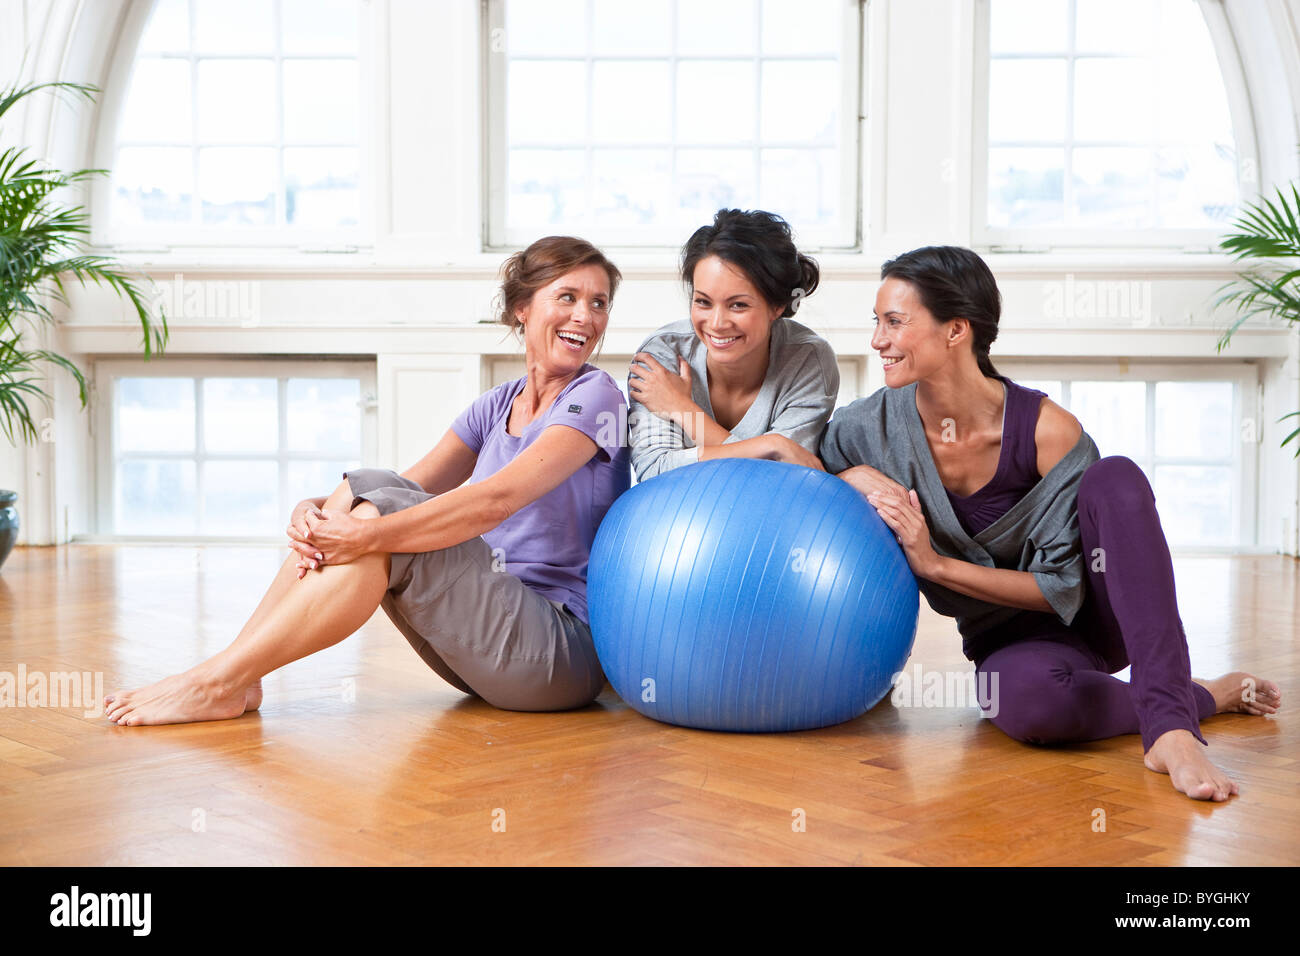 Three women with fitness ball in gym - Stock Image